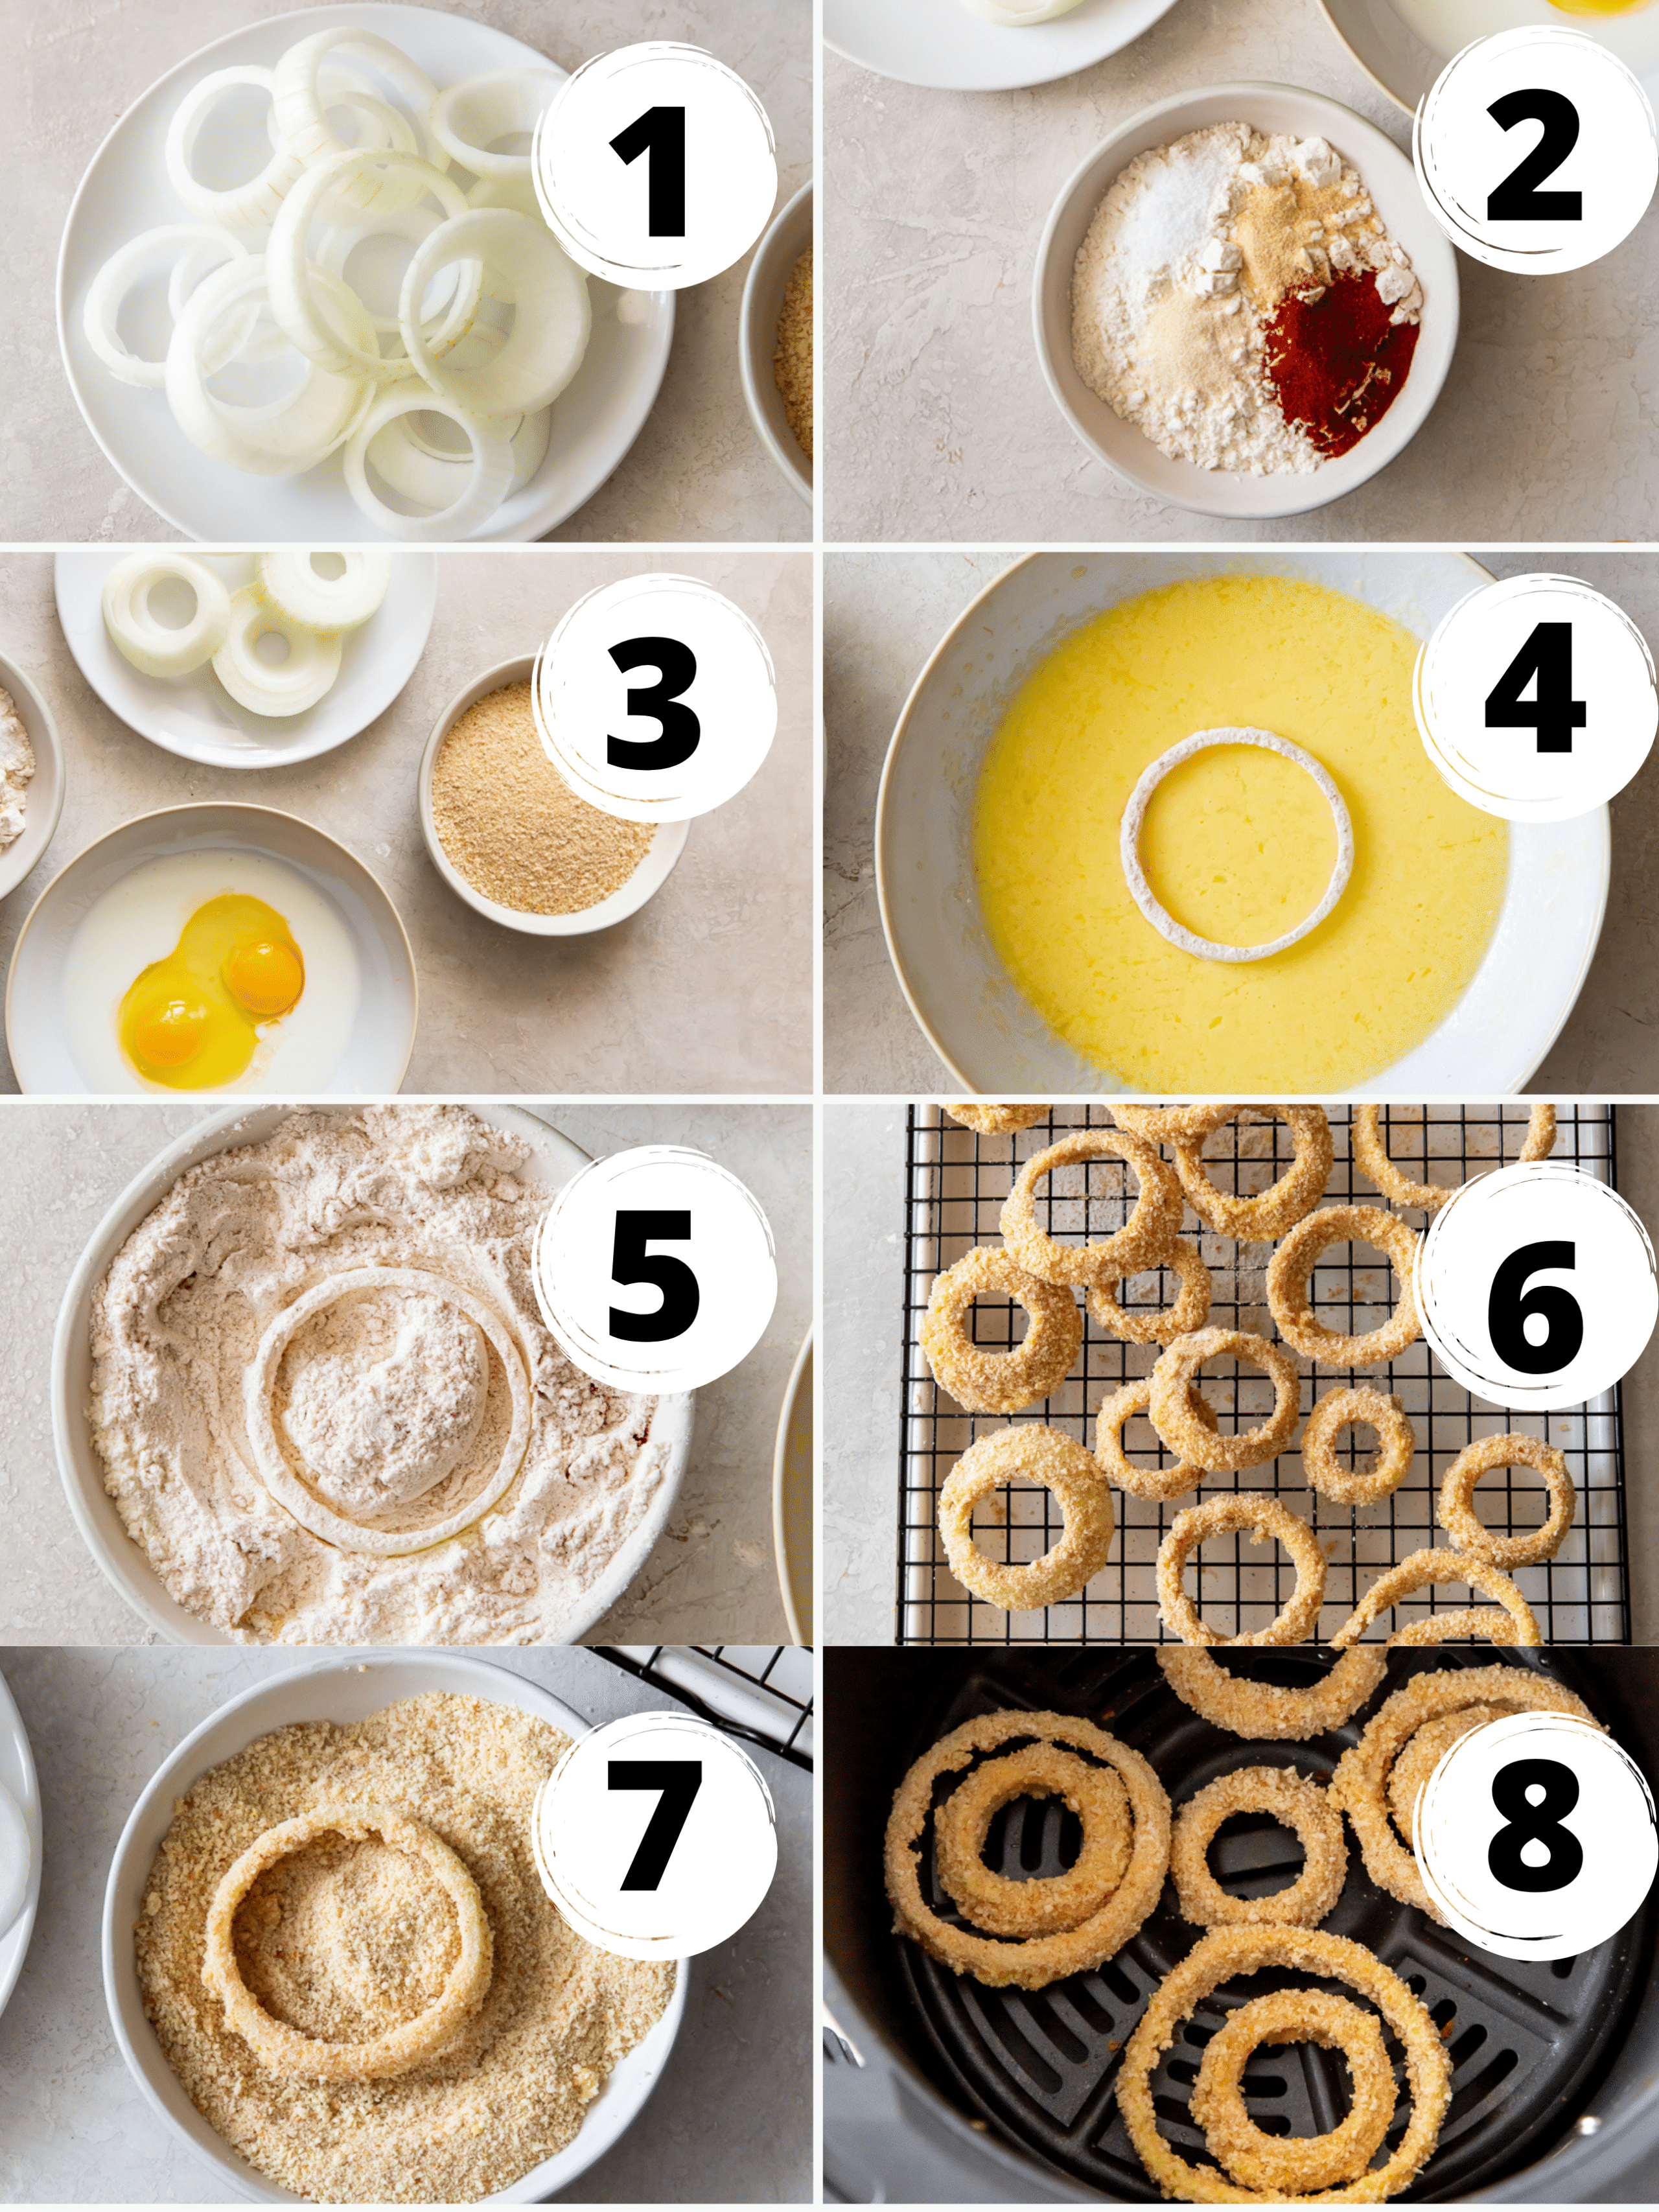 photo collage showing 8 steps to make onion rings in an air fryer